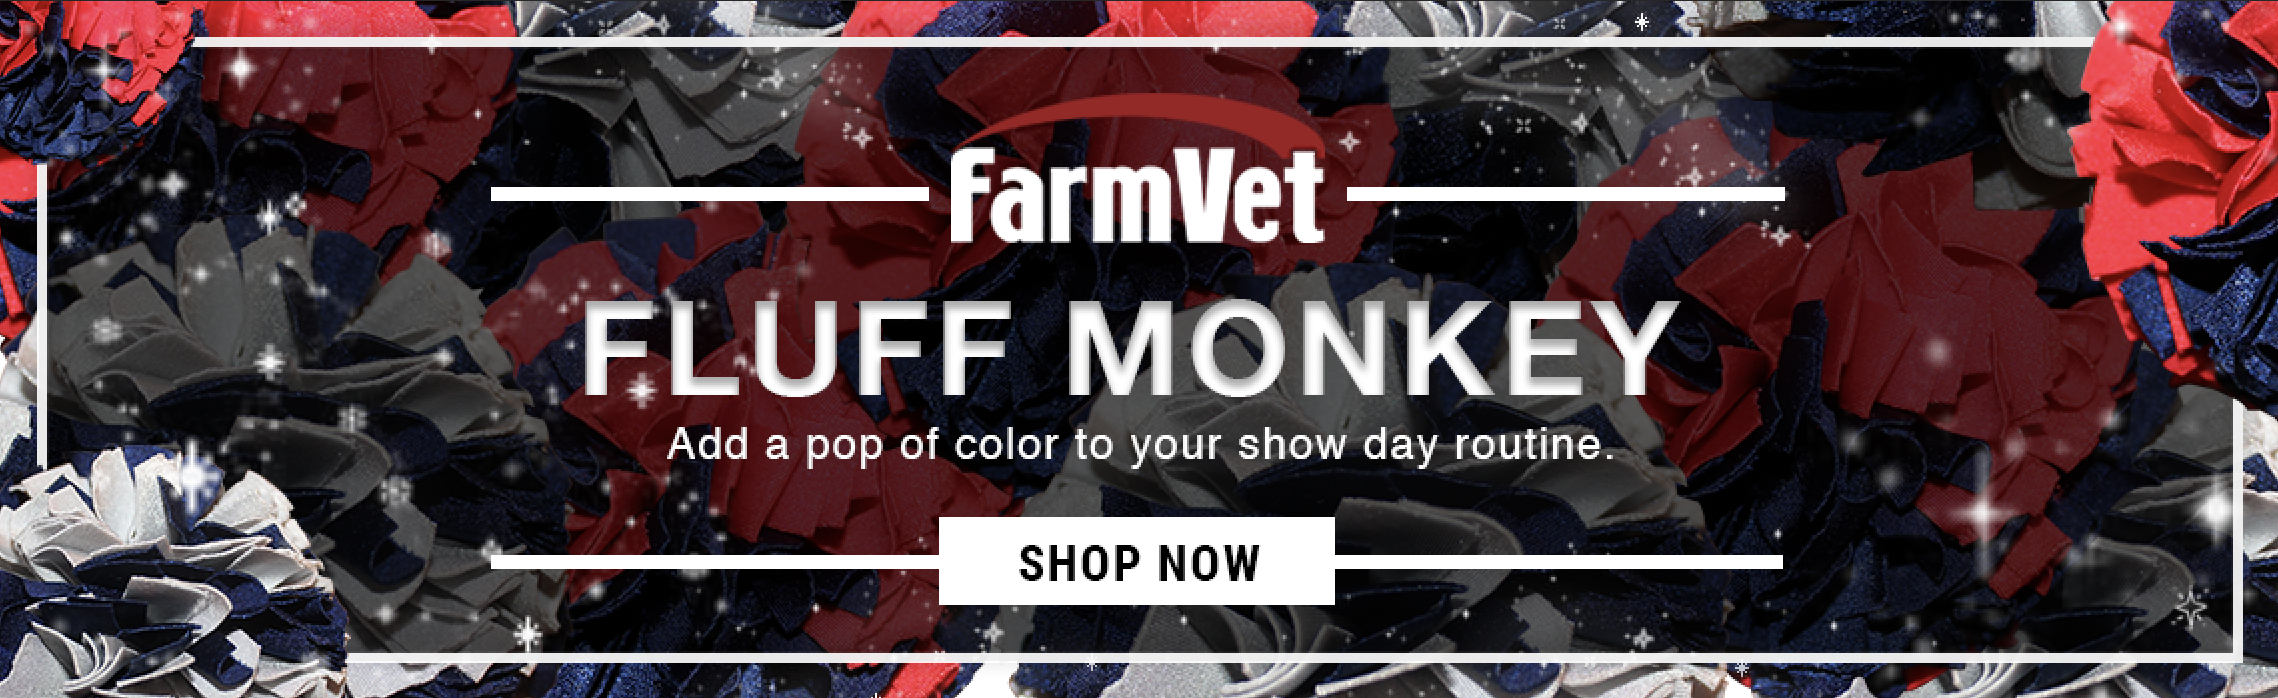 Fluff Monkey Tack Cleaner at FarmVet